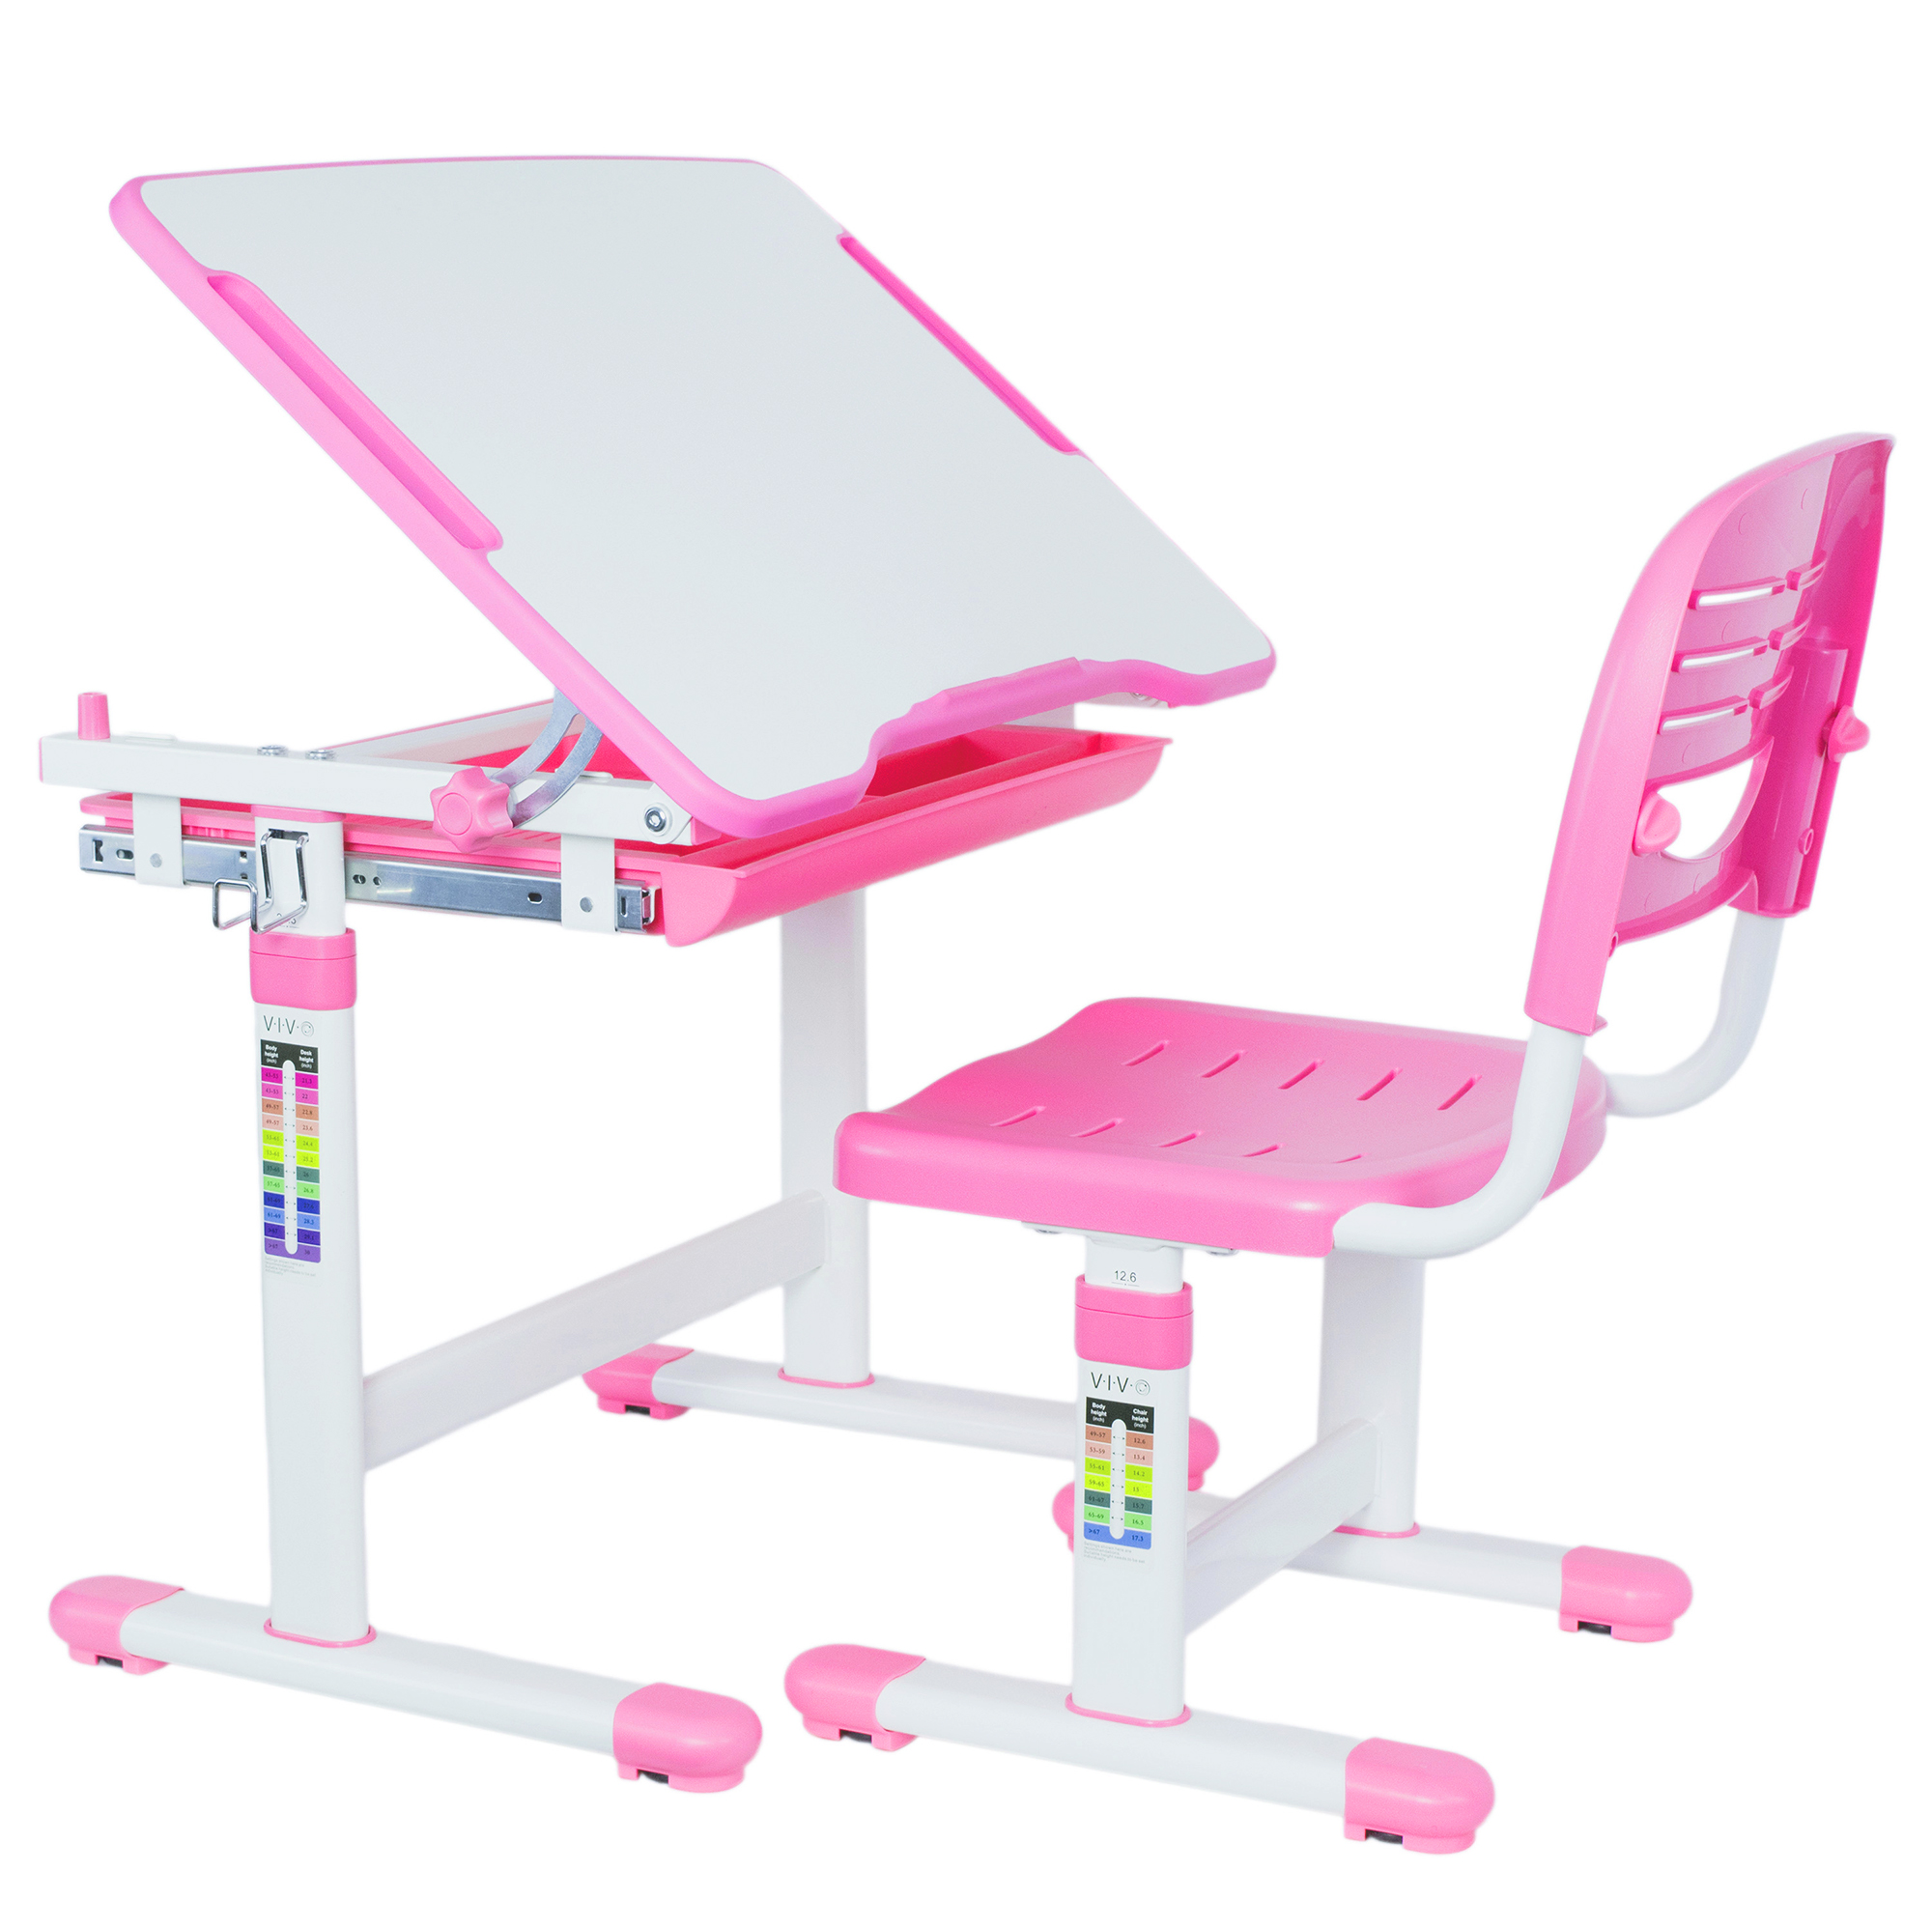 VIVO Height Adjustable Childrens Desk & Chair Kids Interactive Work Station Pink (DESK-V201P)